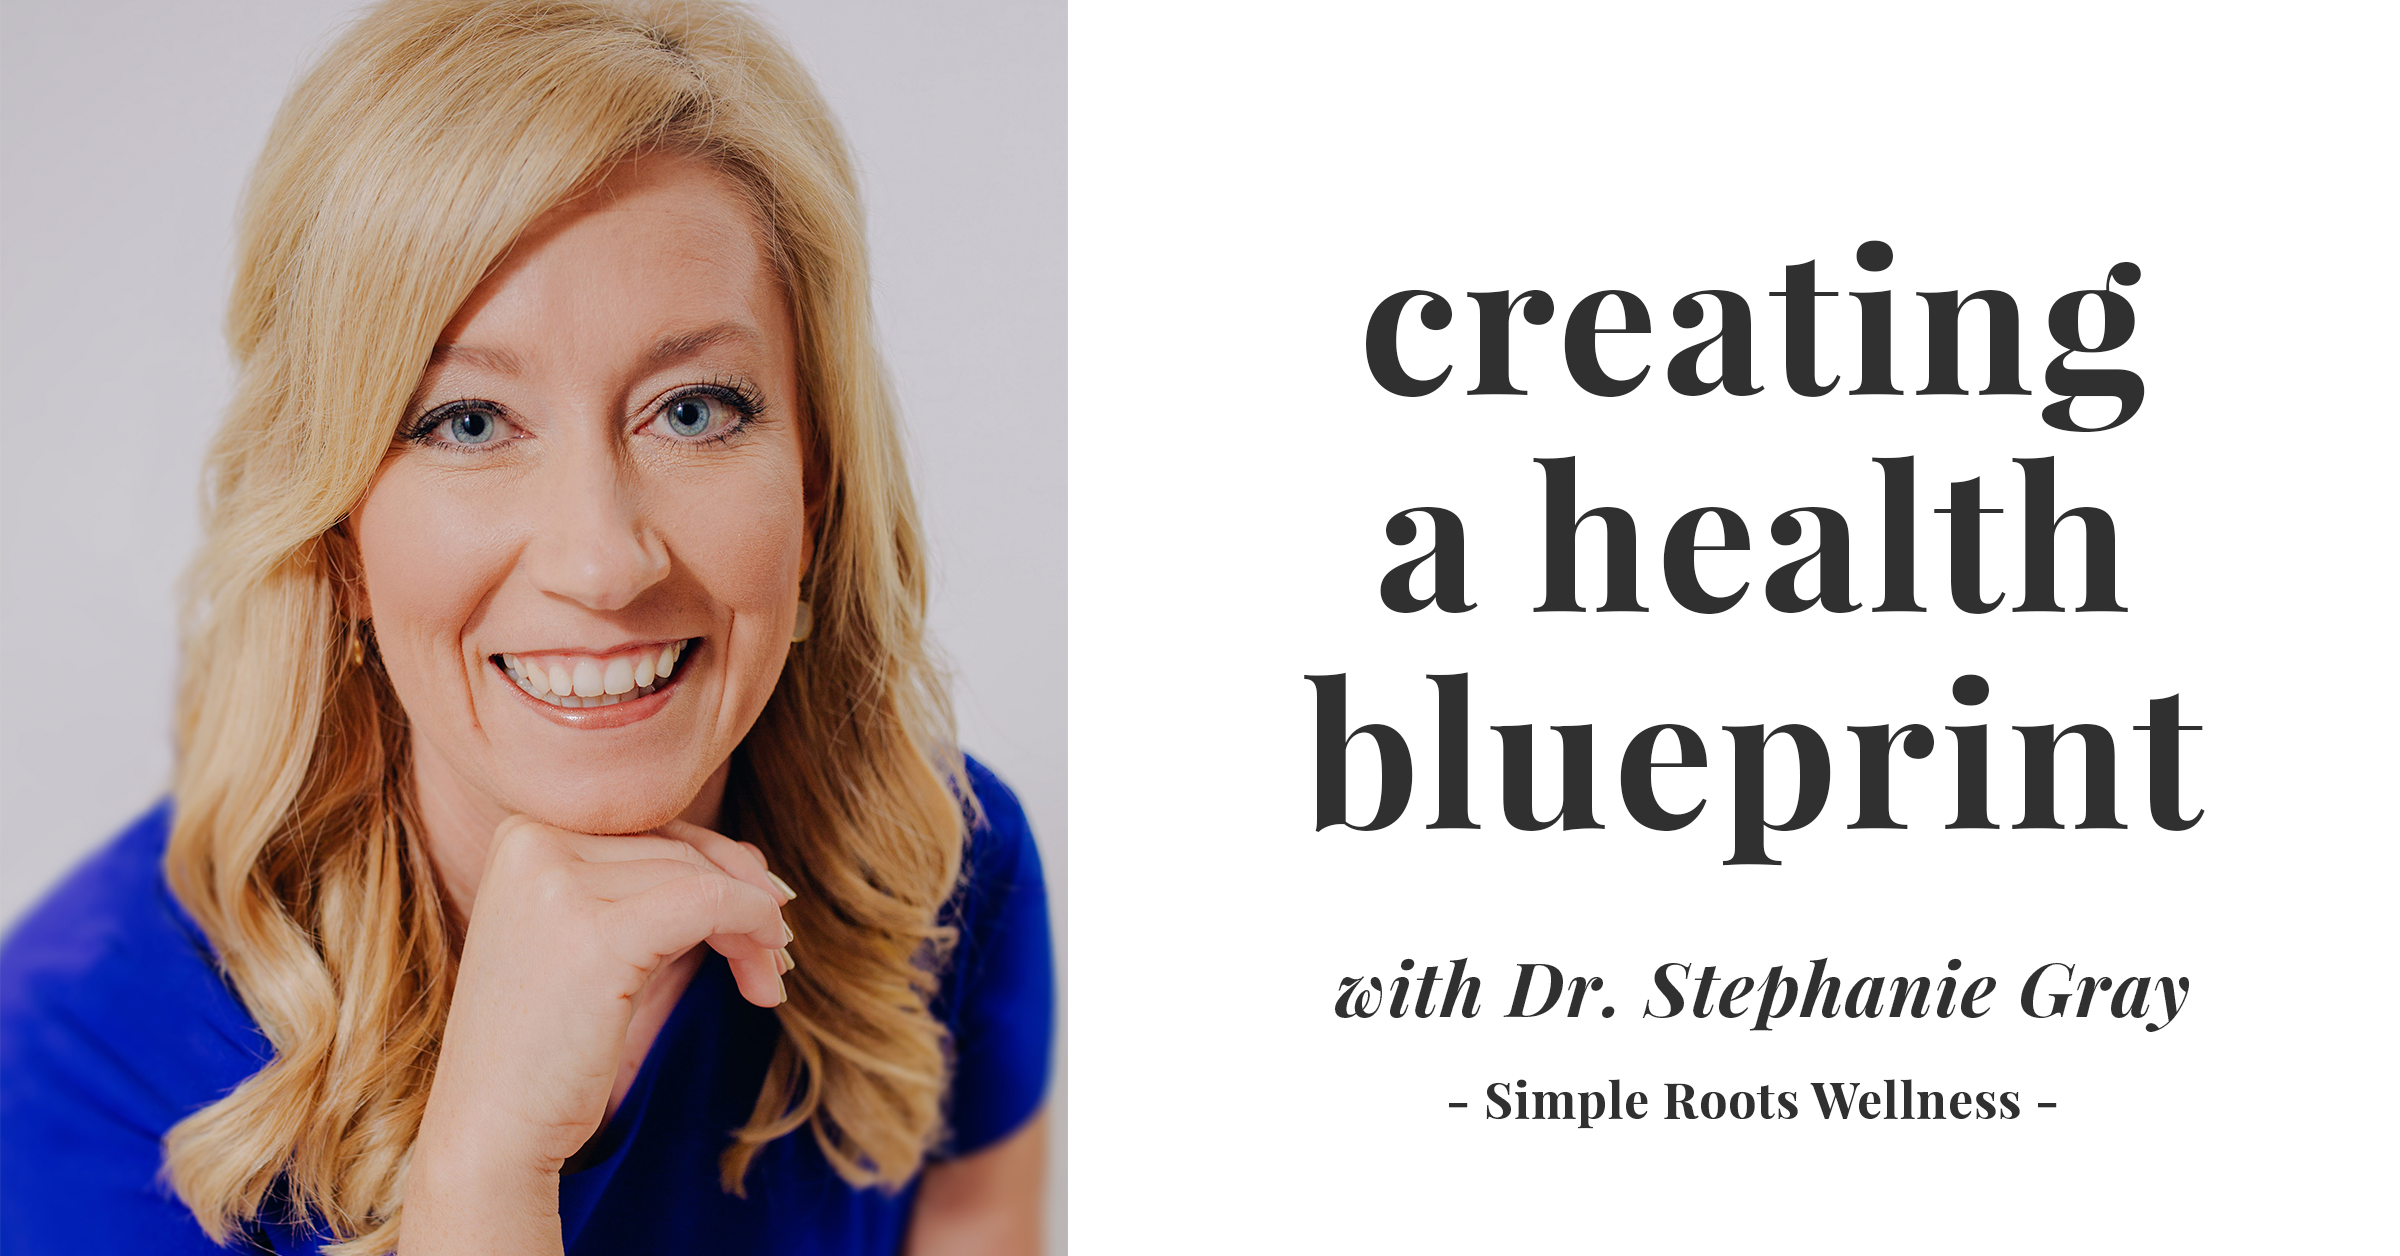 Exhaustion, fatigue and weight gain are just the tip of the iceberg. So many of us are suffering, but do we have to be? Learn how to create your own health blueprint here.